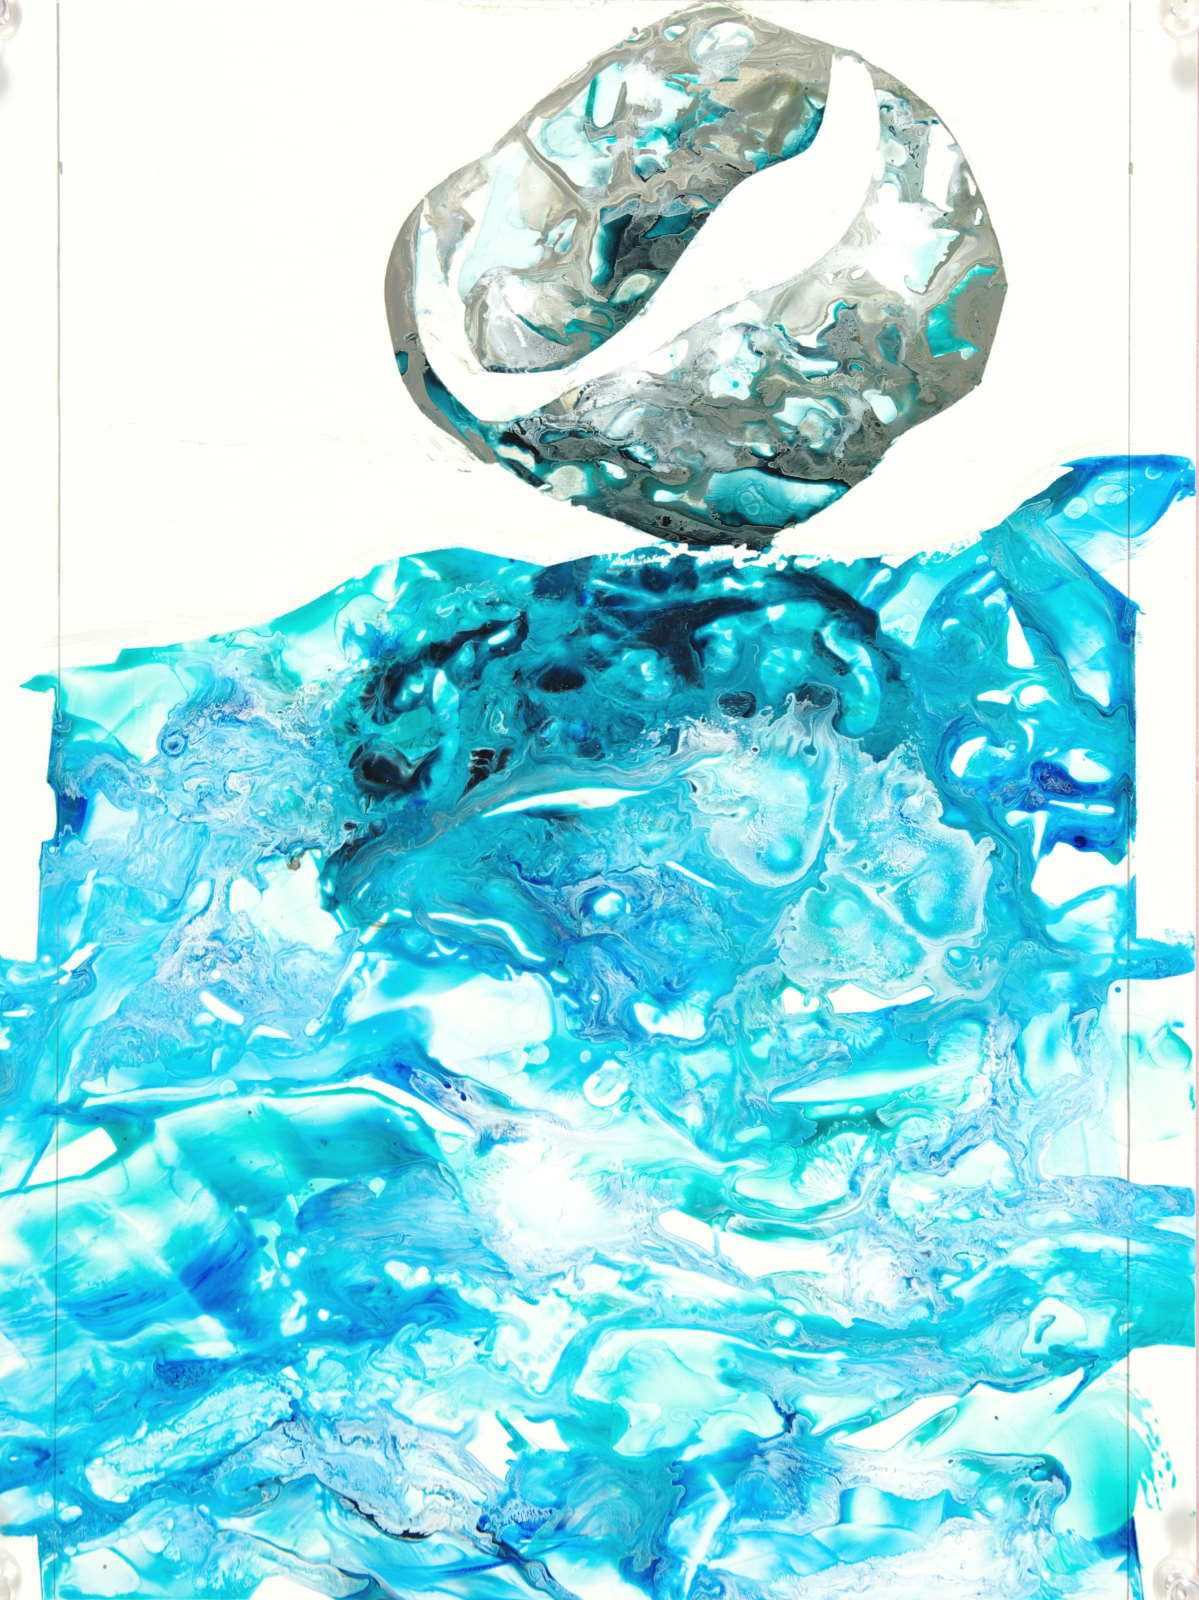 poured paint abstracted water and ball